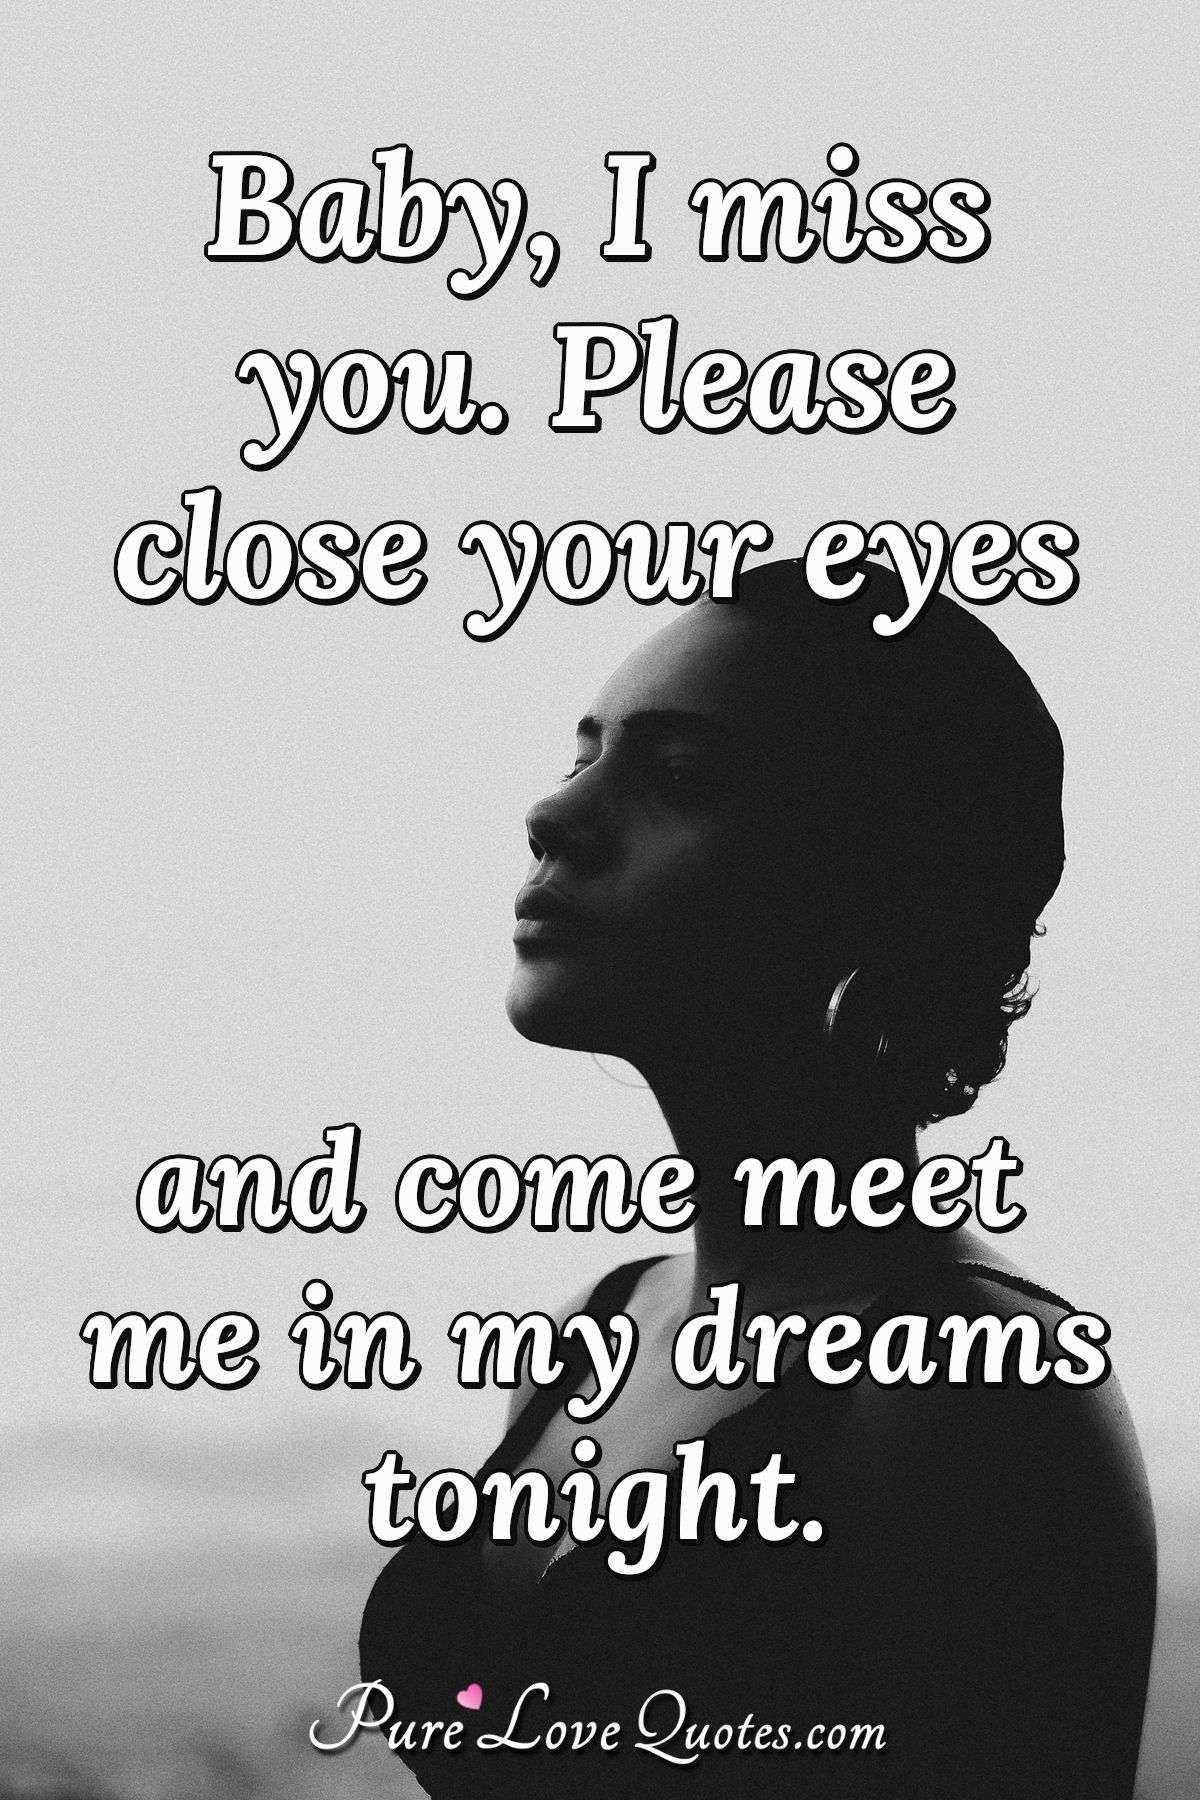 Baby, I miss you. Please close your eyes and come meet me in my dreams tonight. | PureLoveQuotes